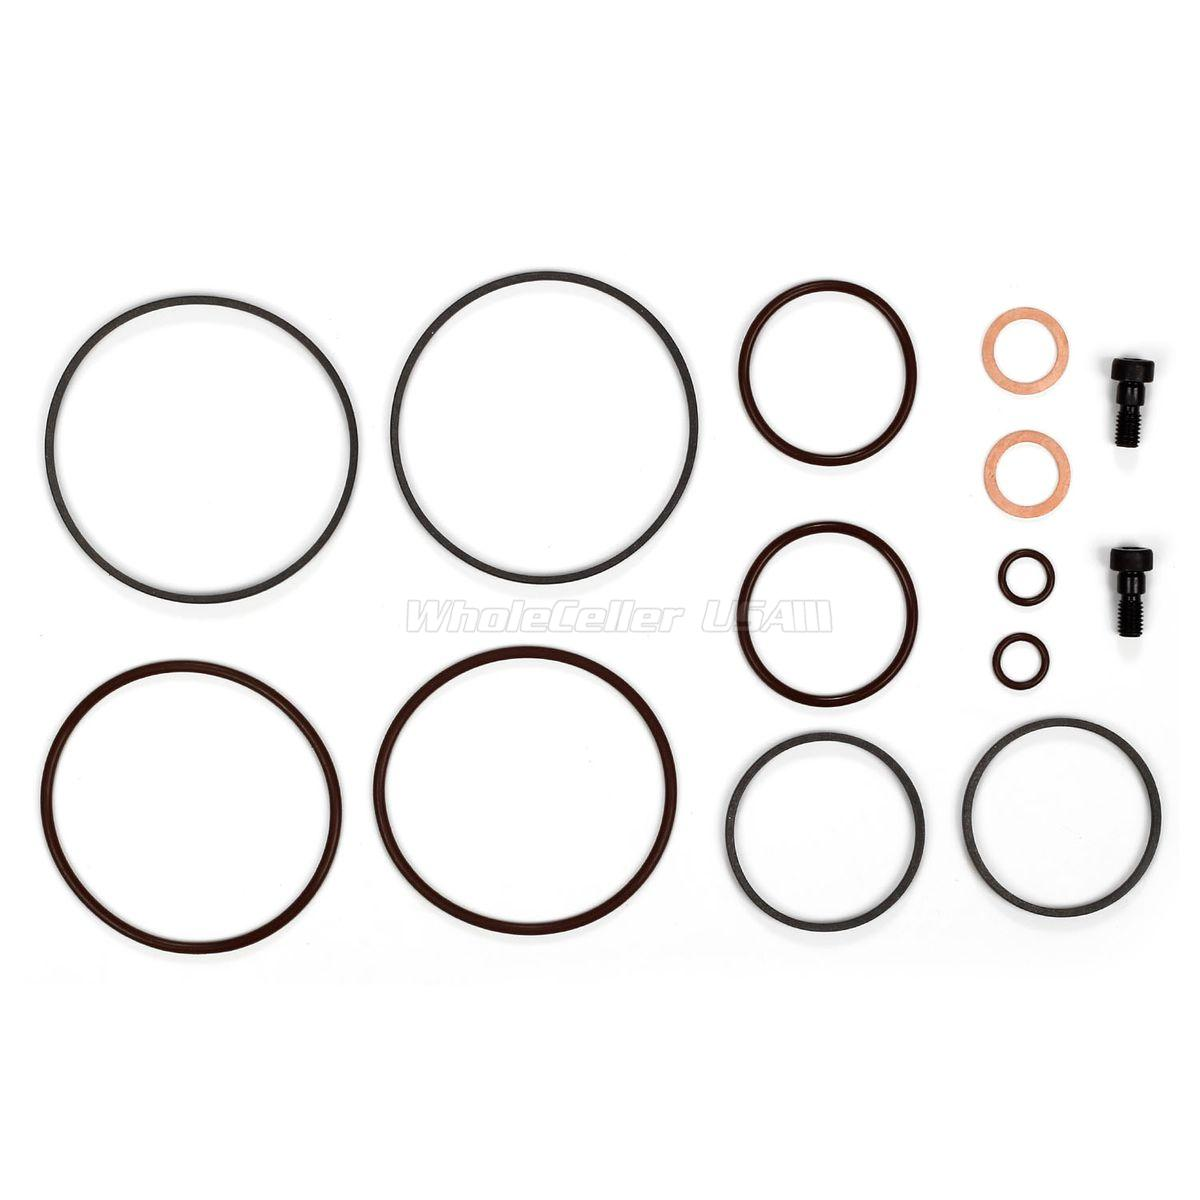 VANOS O-Ring Seal Repair Kit Fits BMW 98-05 3-series E36